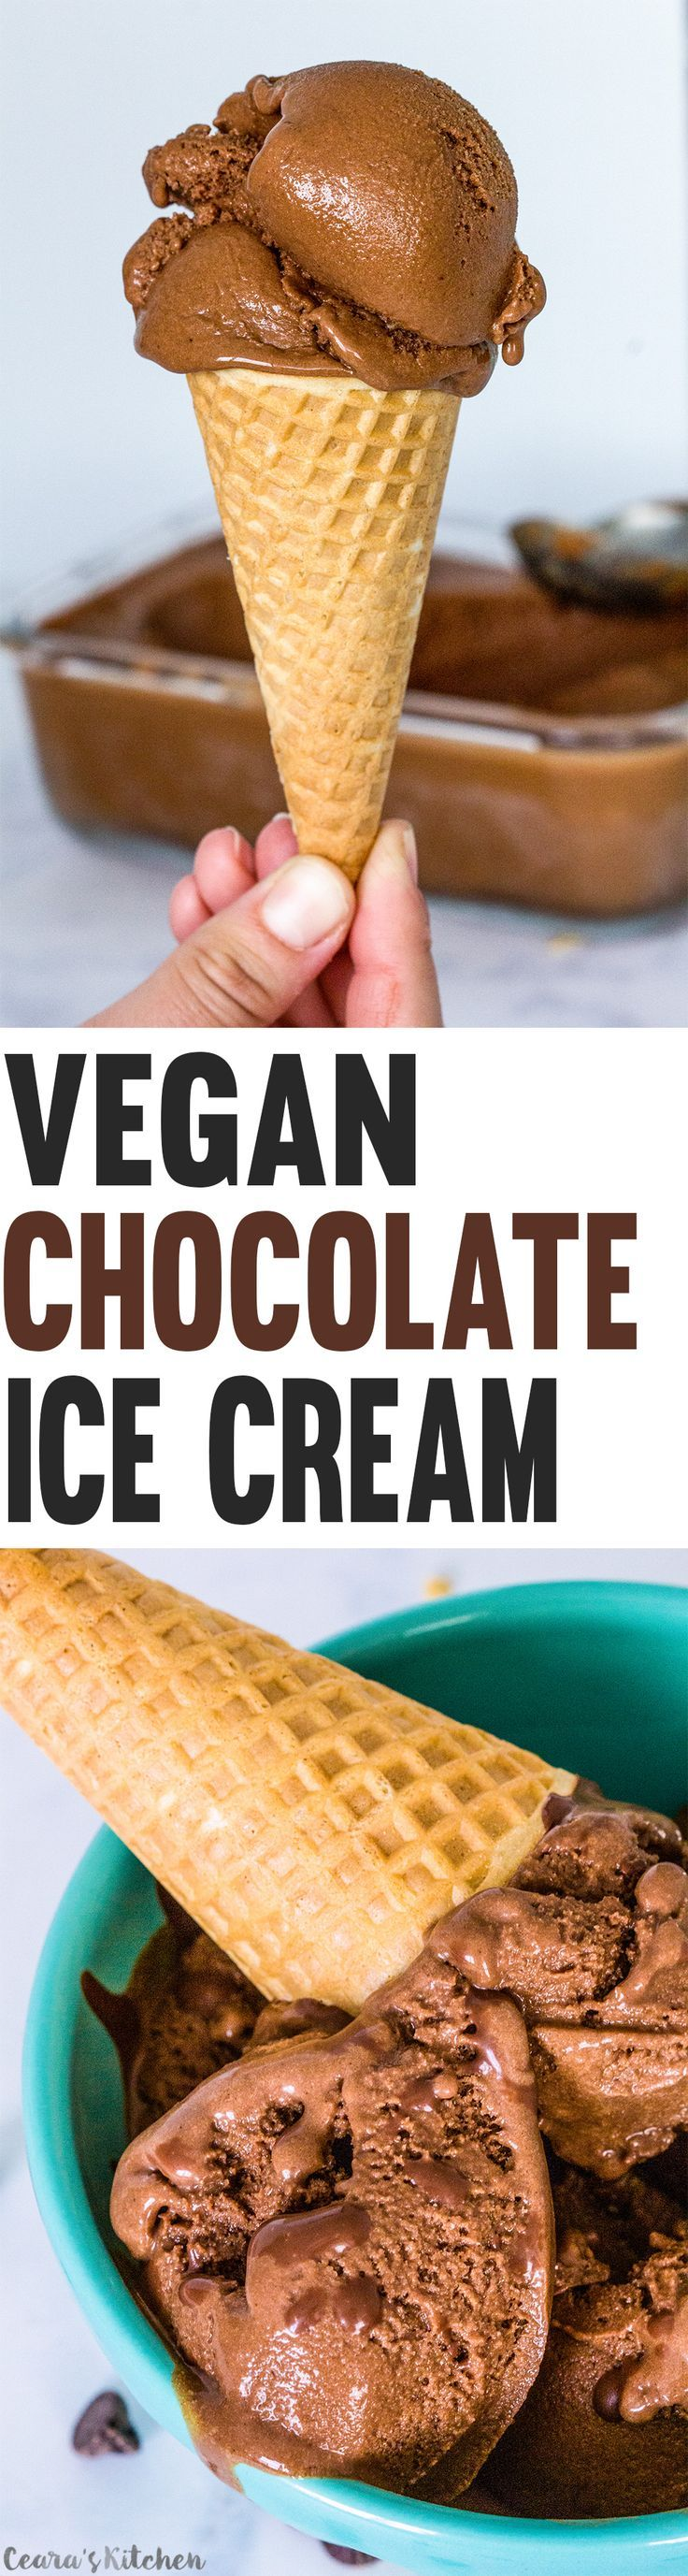 Vegan Chocolate Ice Cream made with only a handful of ingredients - so incredibly silky and creamy you'll wonder why you ever bothered with store-bought! #vegan #glutenfree #icecream #healthy #coconutmilk